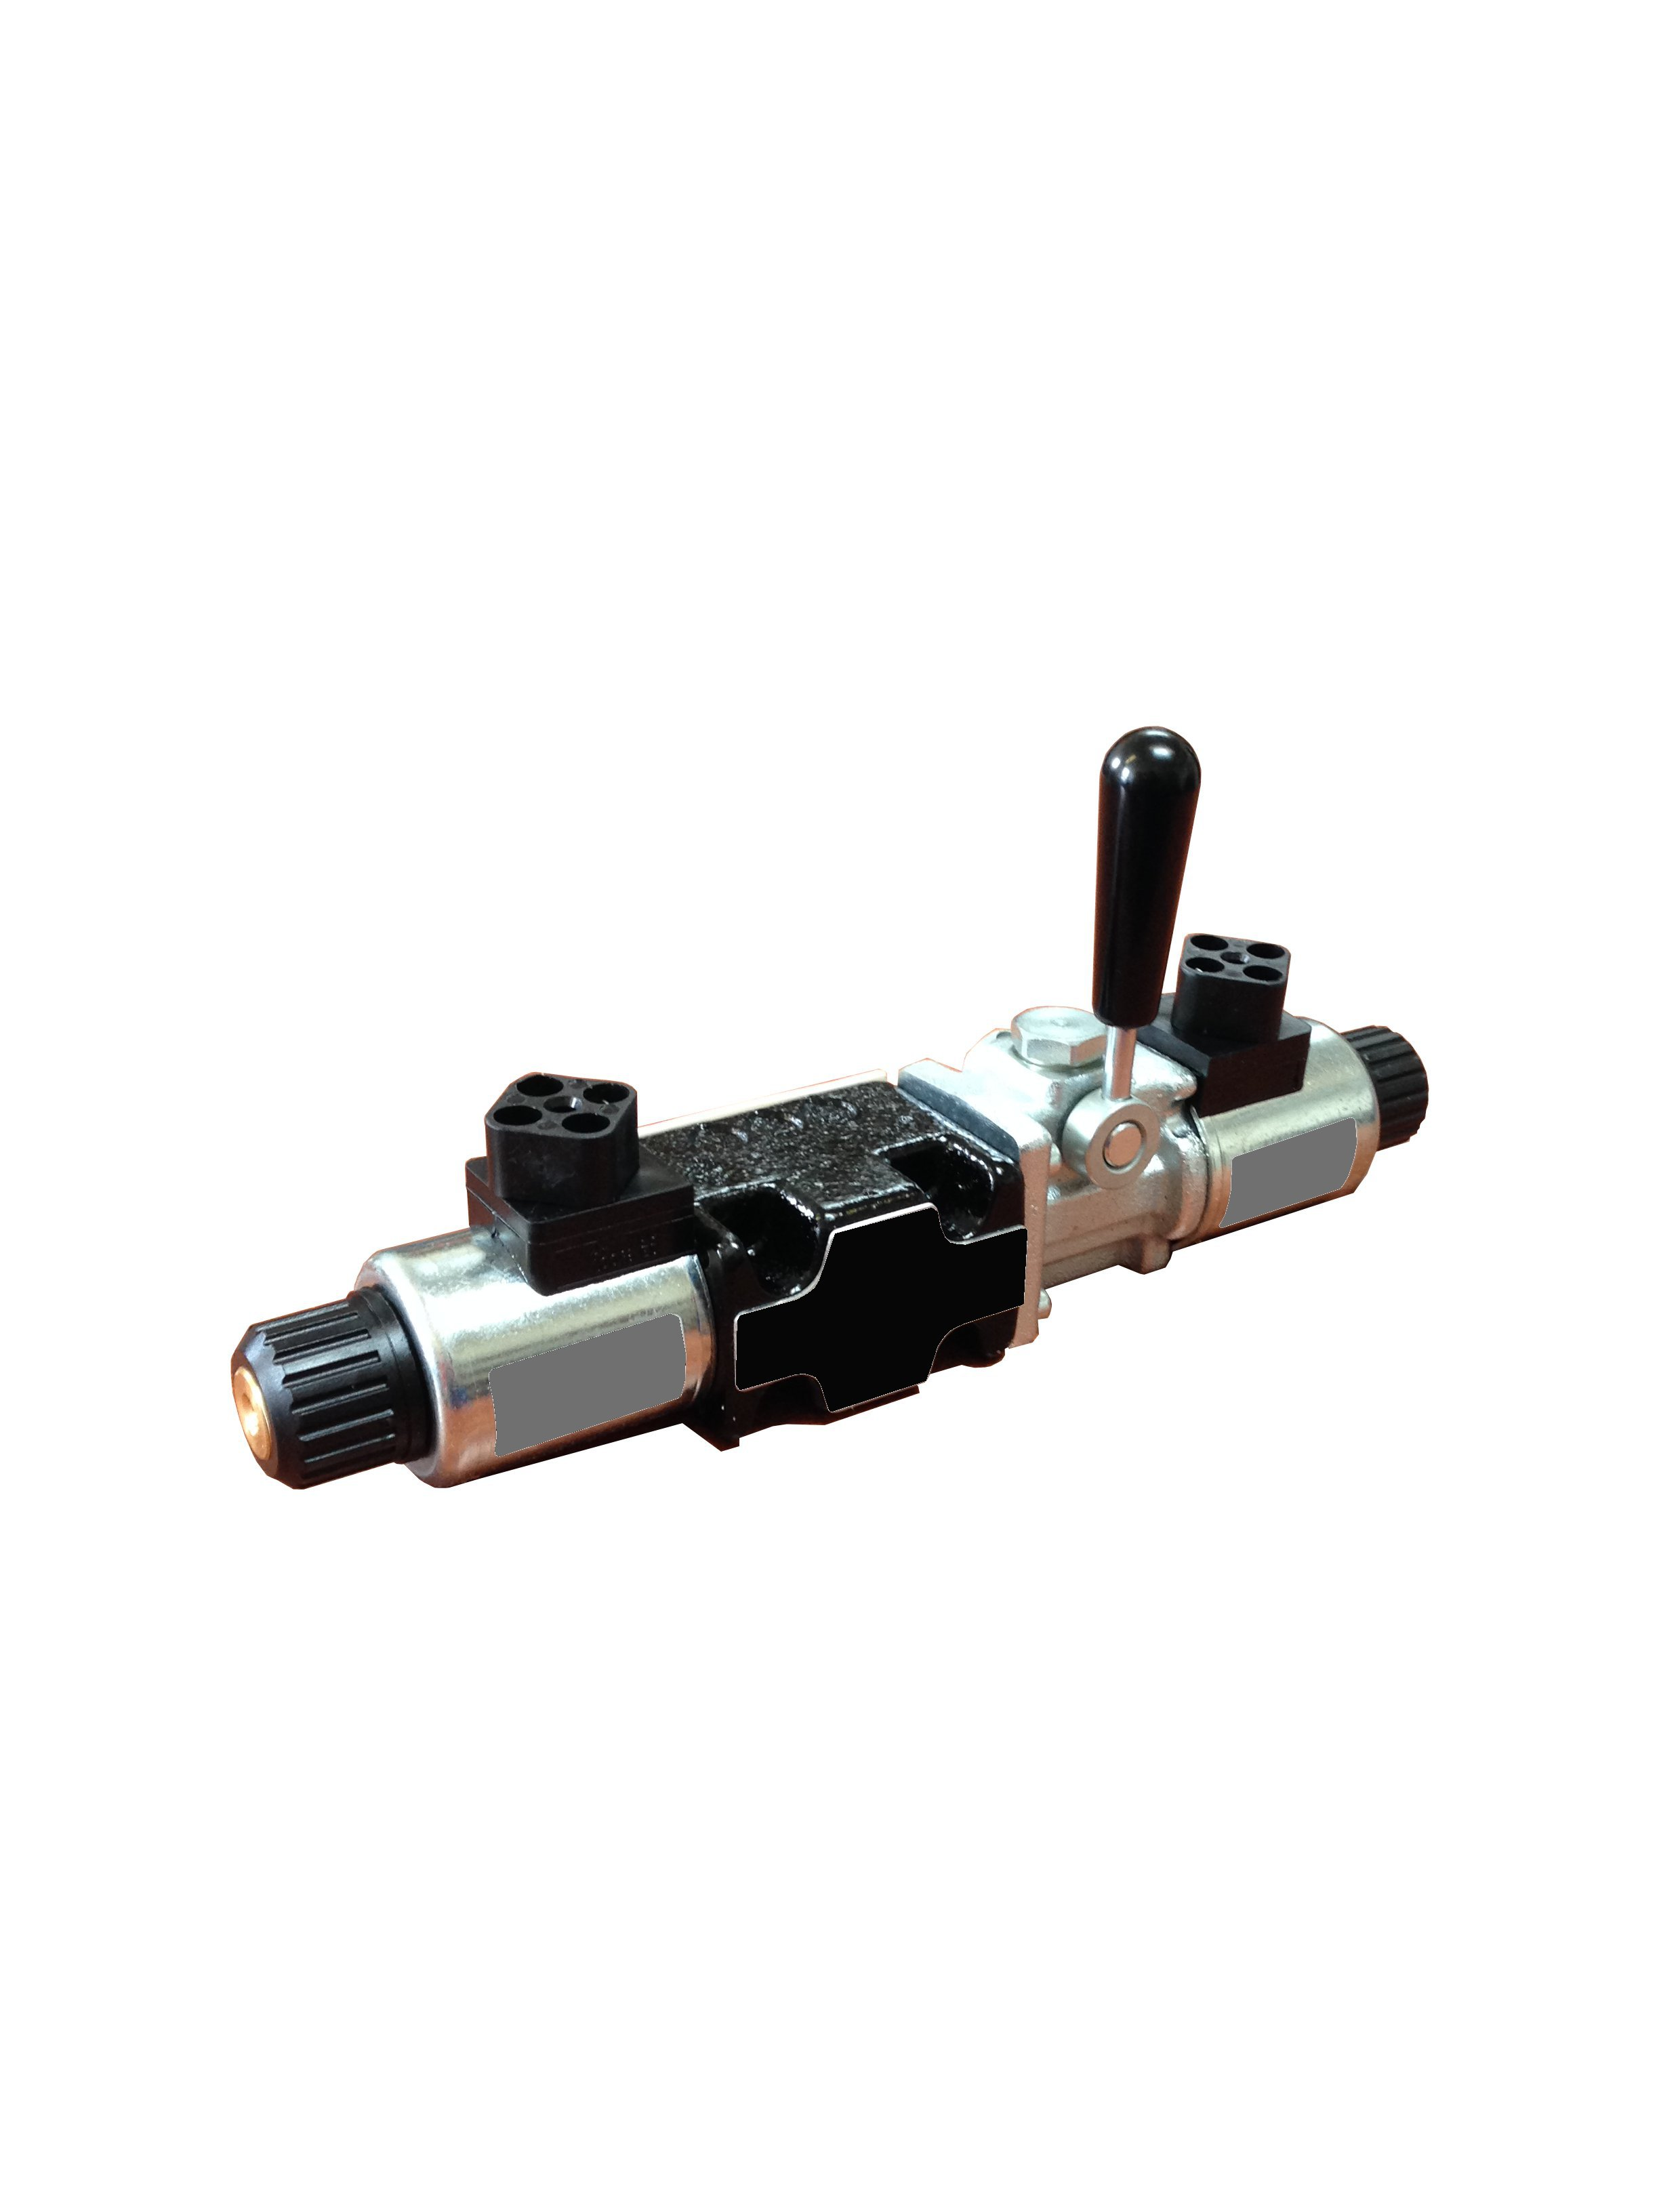 Solenoid valve with lever